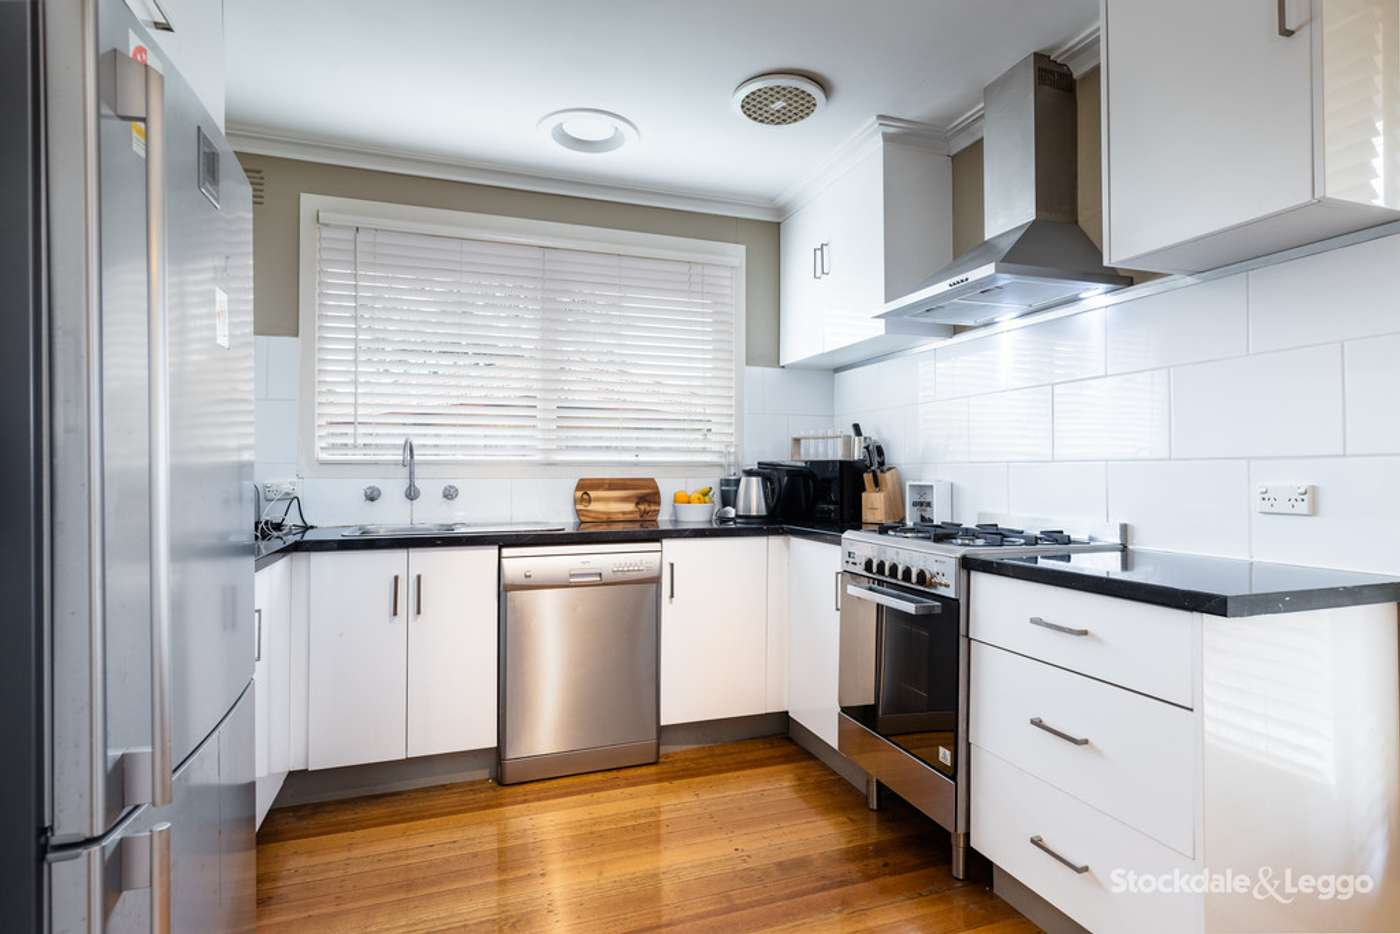 Main view of Homely house listing, 60 Baxter Tooradin Rd, Baxter VIC 3911